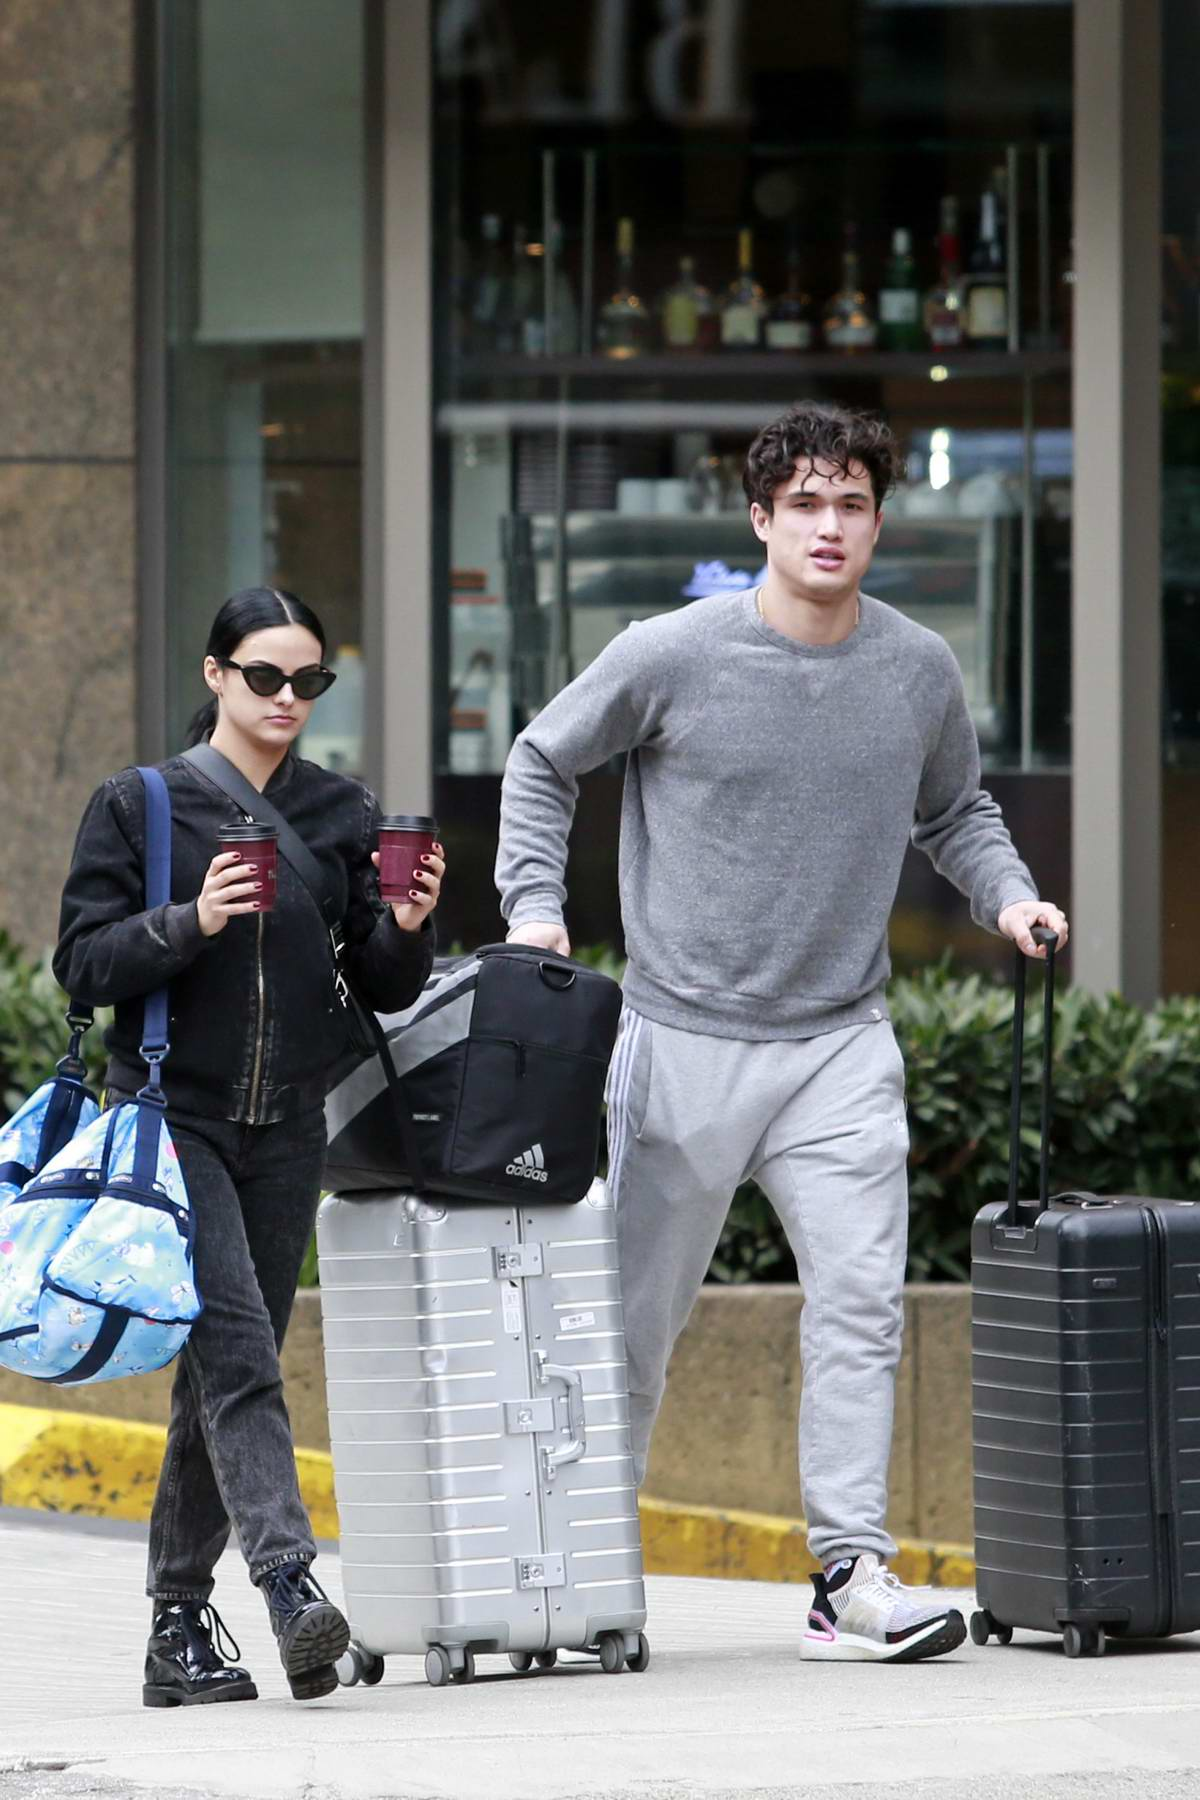 Camila Mendes seen while moving into Charles Melton's apartment in Vancouver, Canada